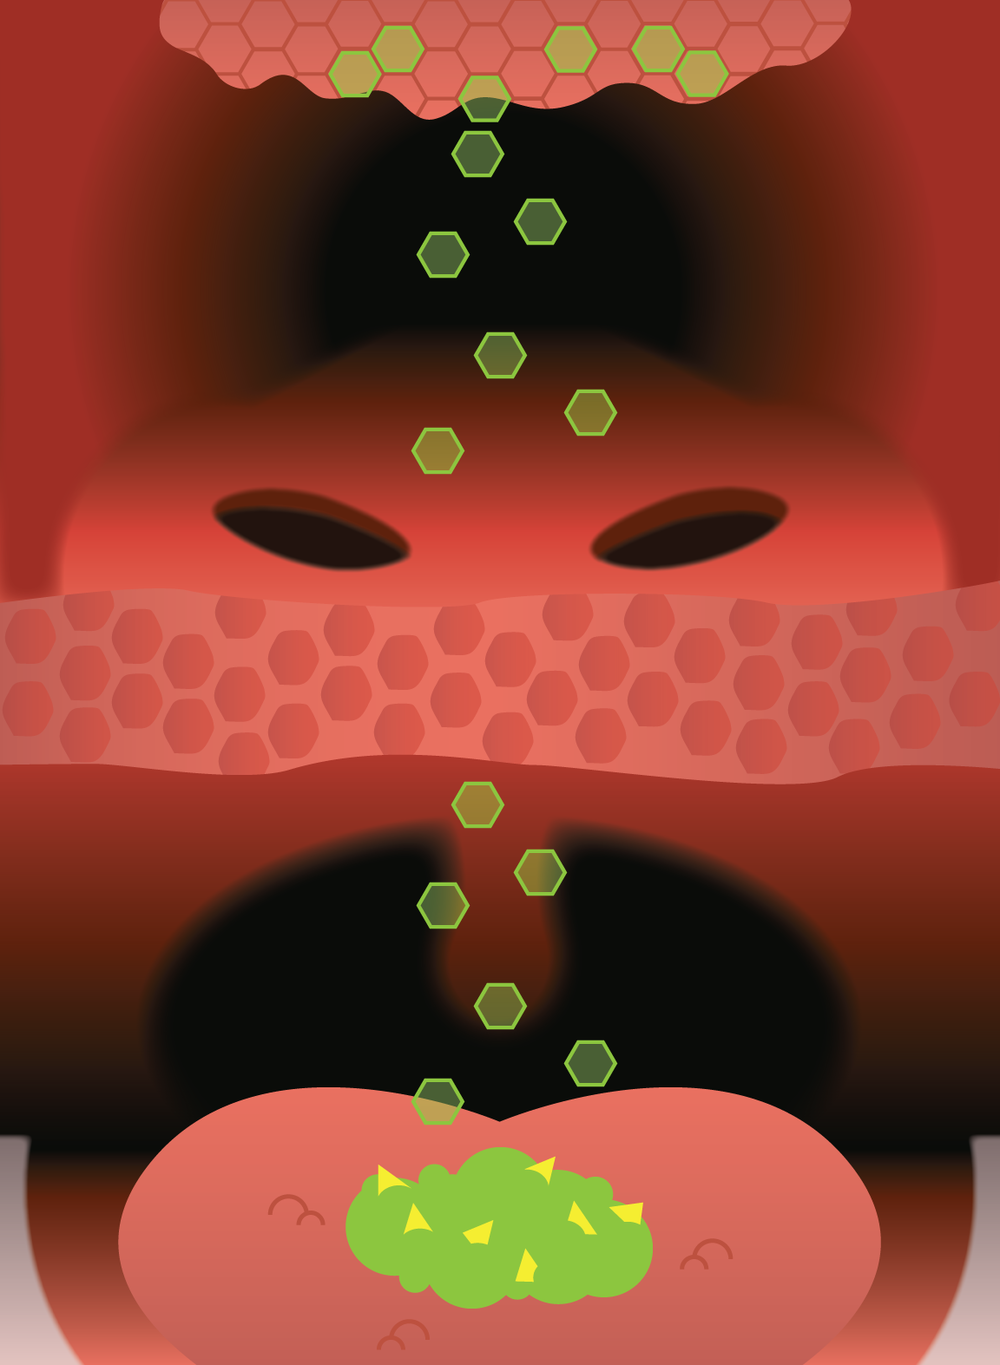 First attempt at illustrating how vapor particles move through the retro nasal canal into the olfactory cells. Vapor particles (the green hexagons) are moving upward from the food on the tongue,  passing a pink membrane (halfway through the image), and then into the nasal passage and connecting with the olfactory cells at the top.